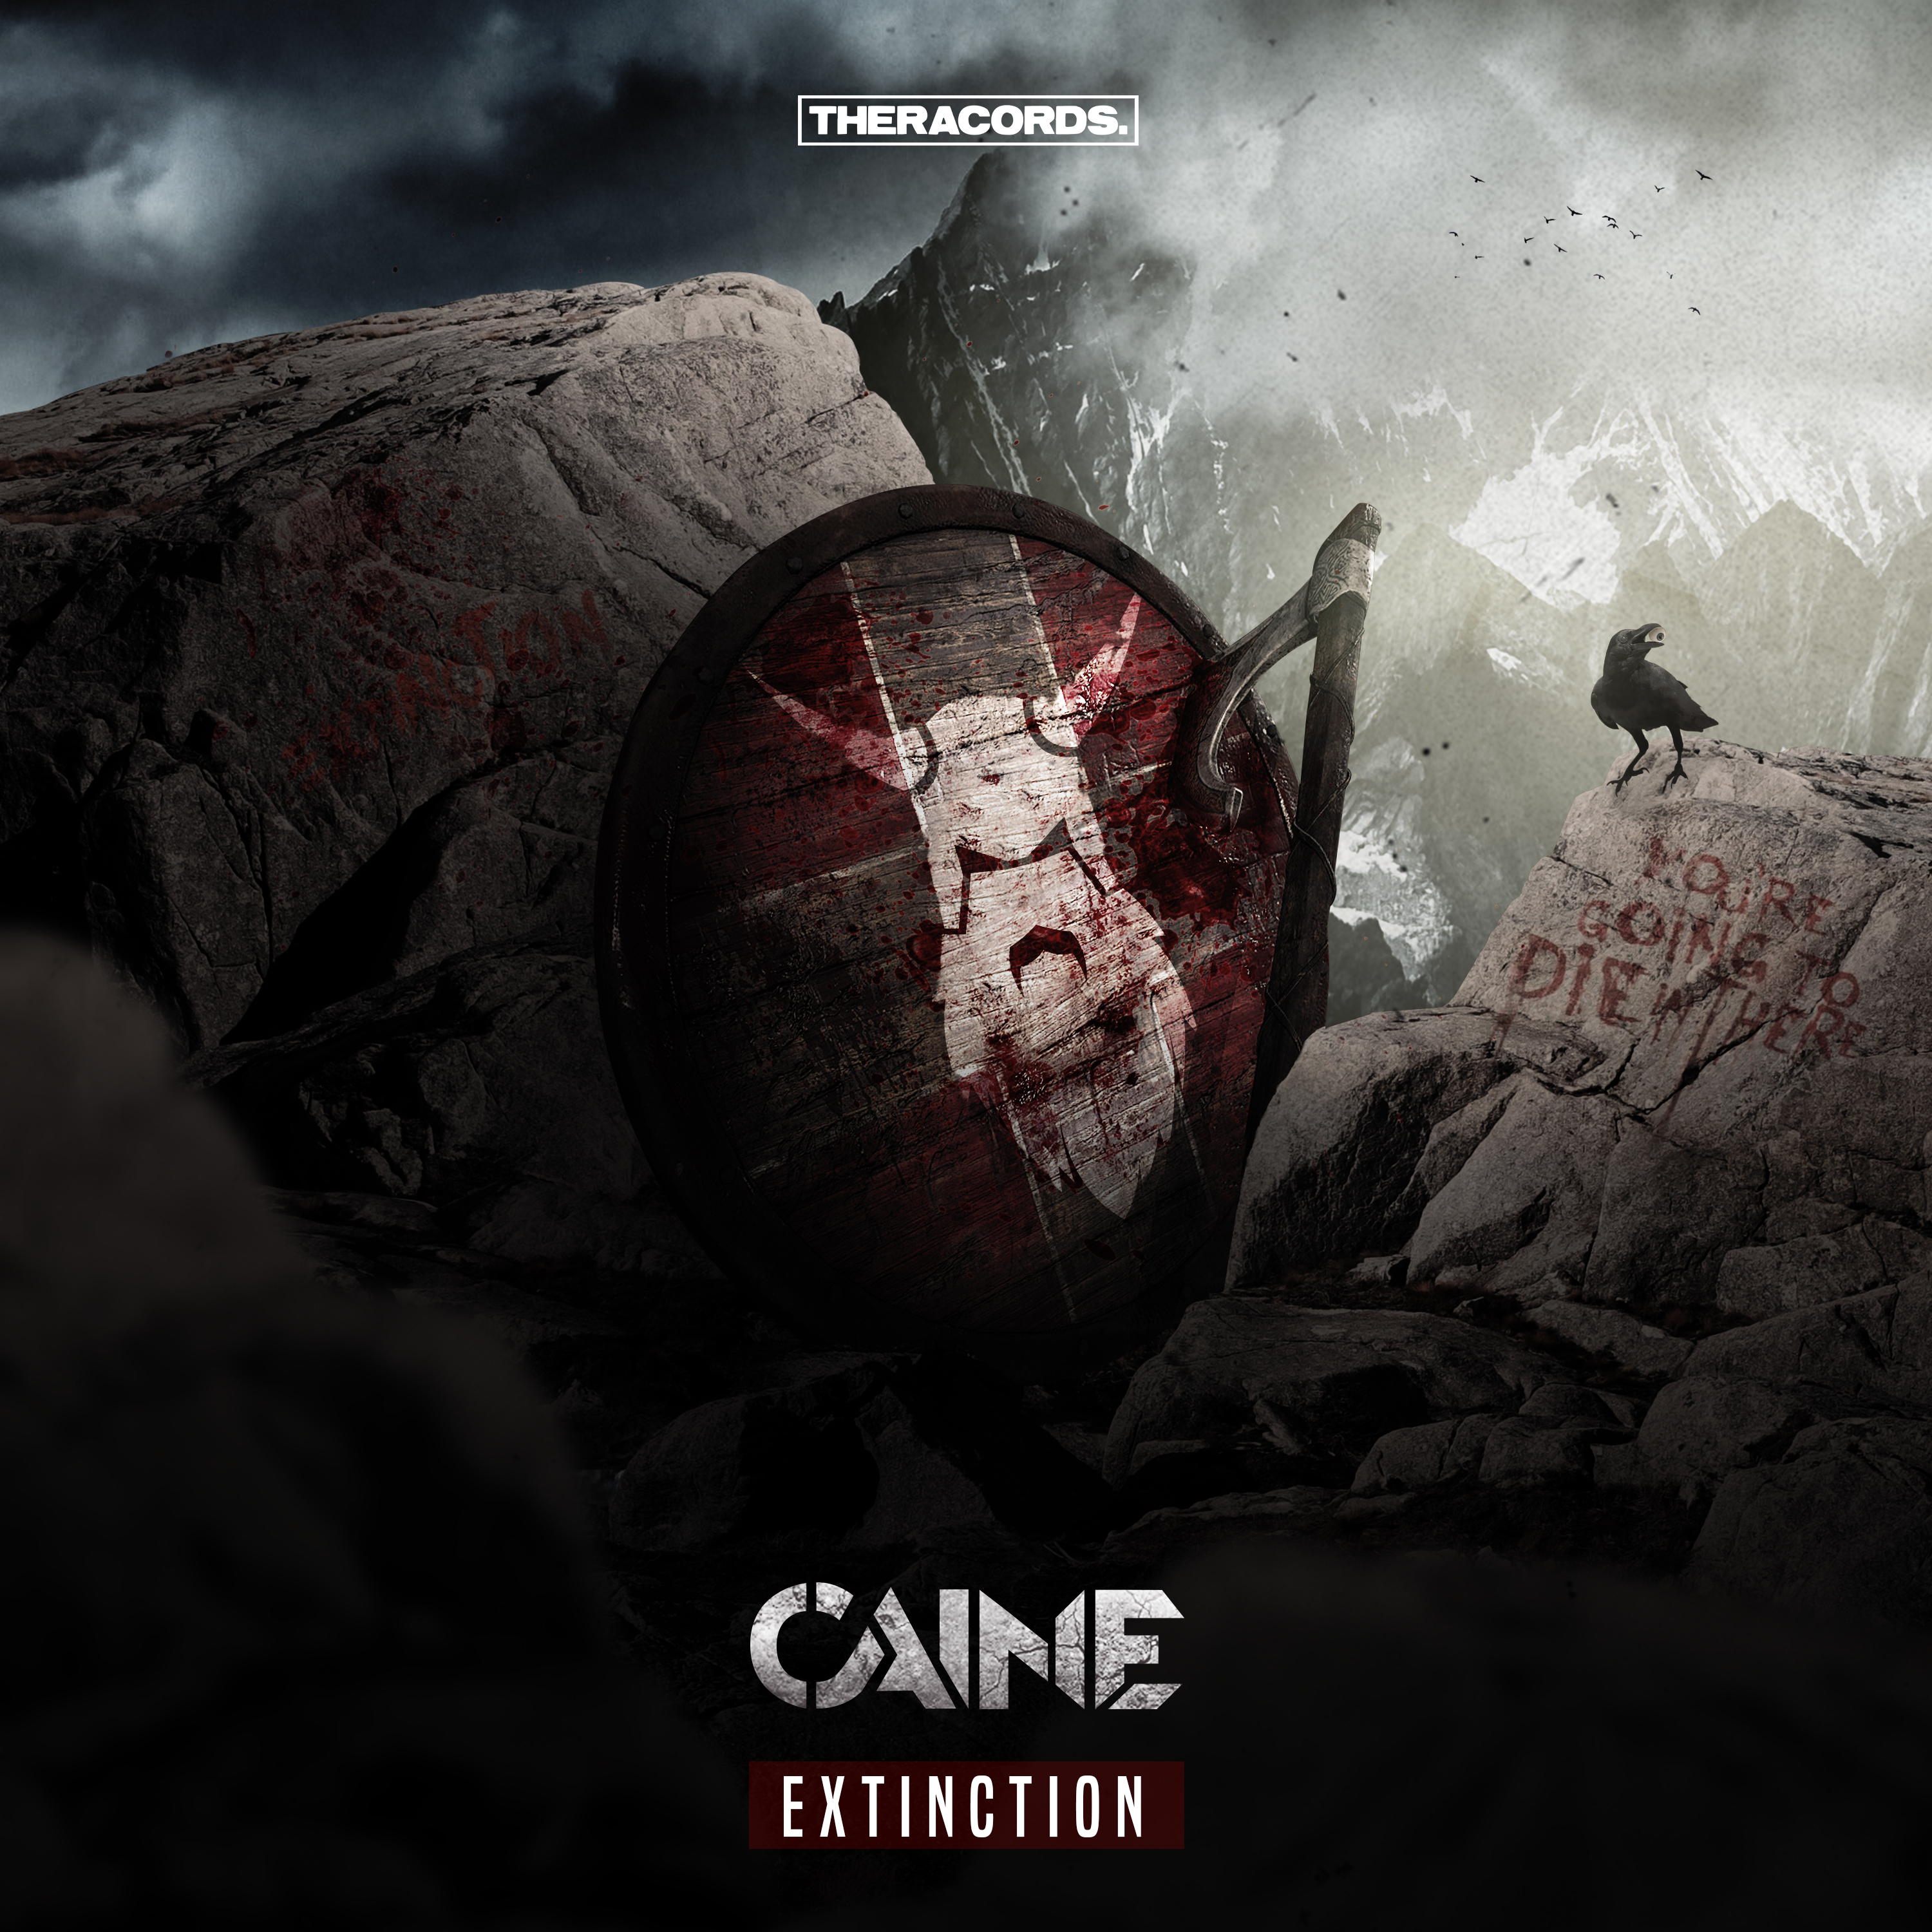 Caine - Extinction [THERACORDS] THER207